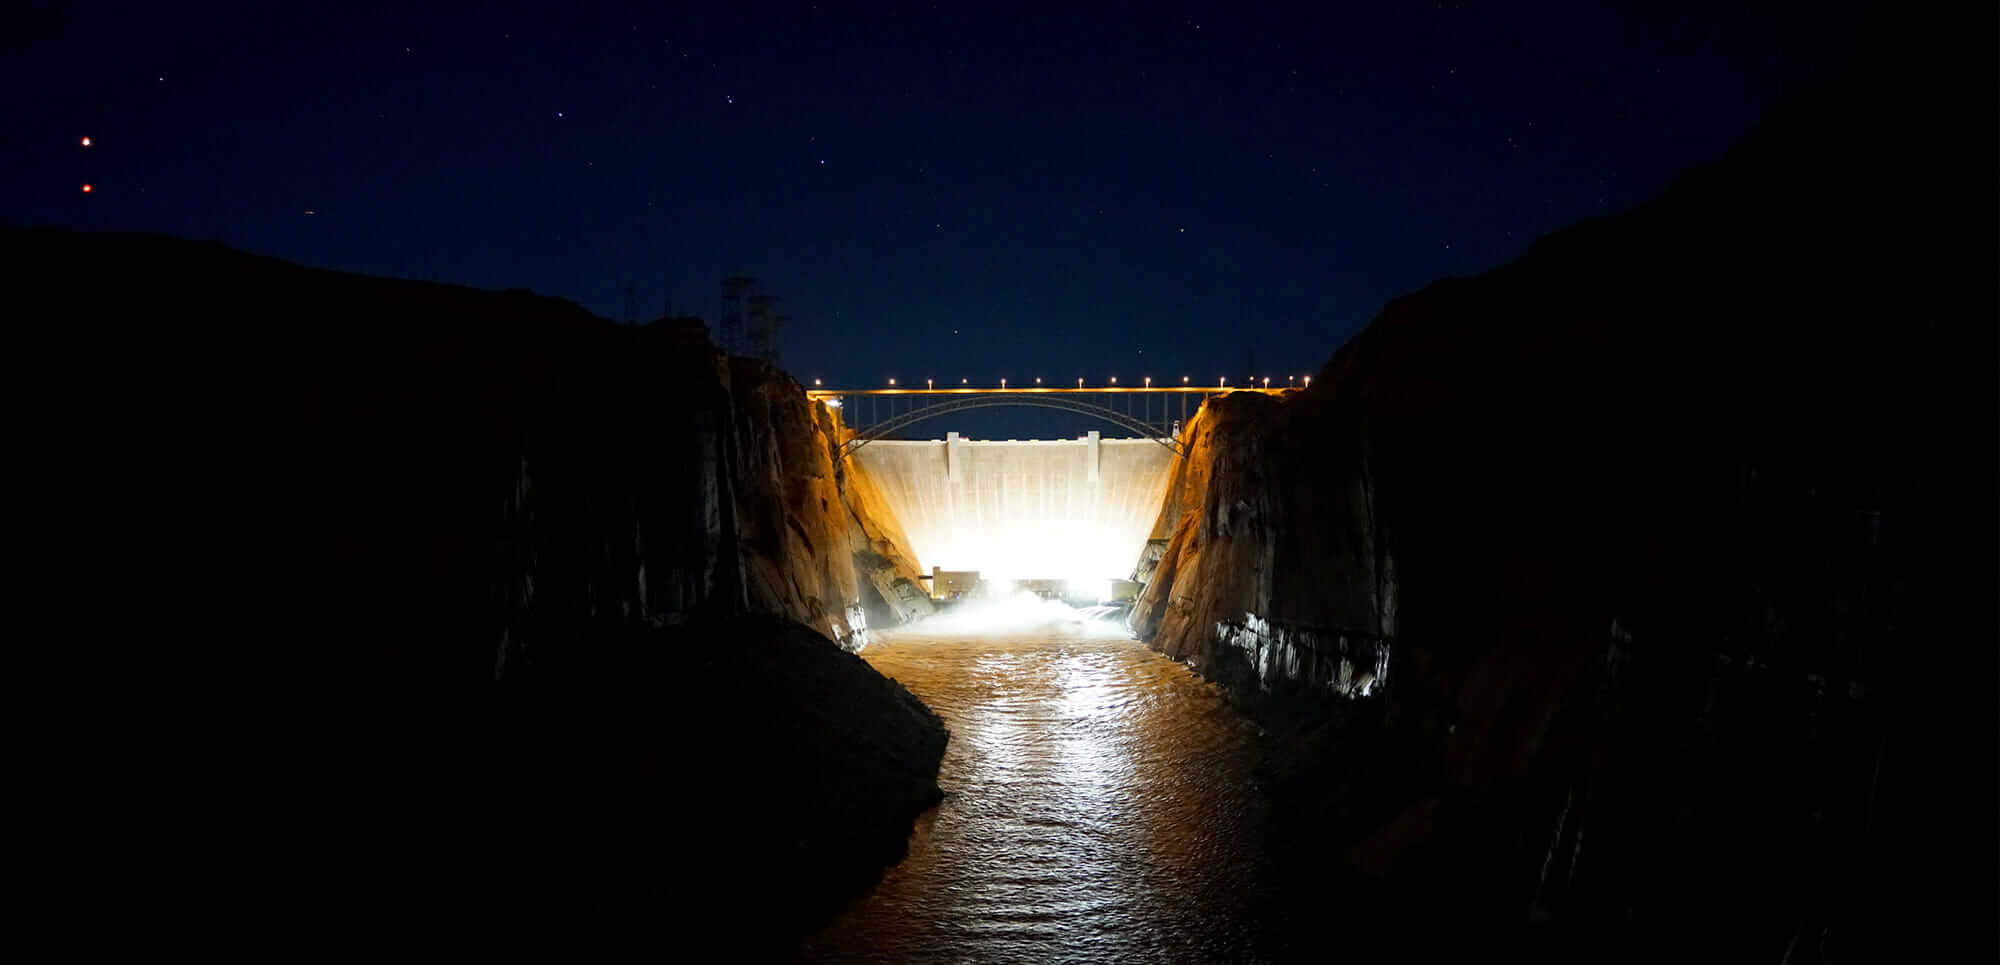 critical infrastructure protection The Big Dipper over Glen Canyon Dam during the High Flow Experiment